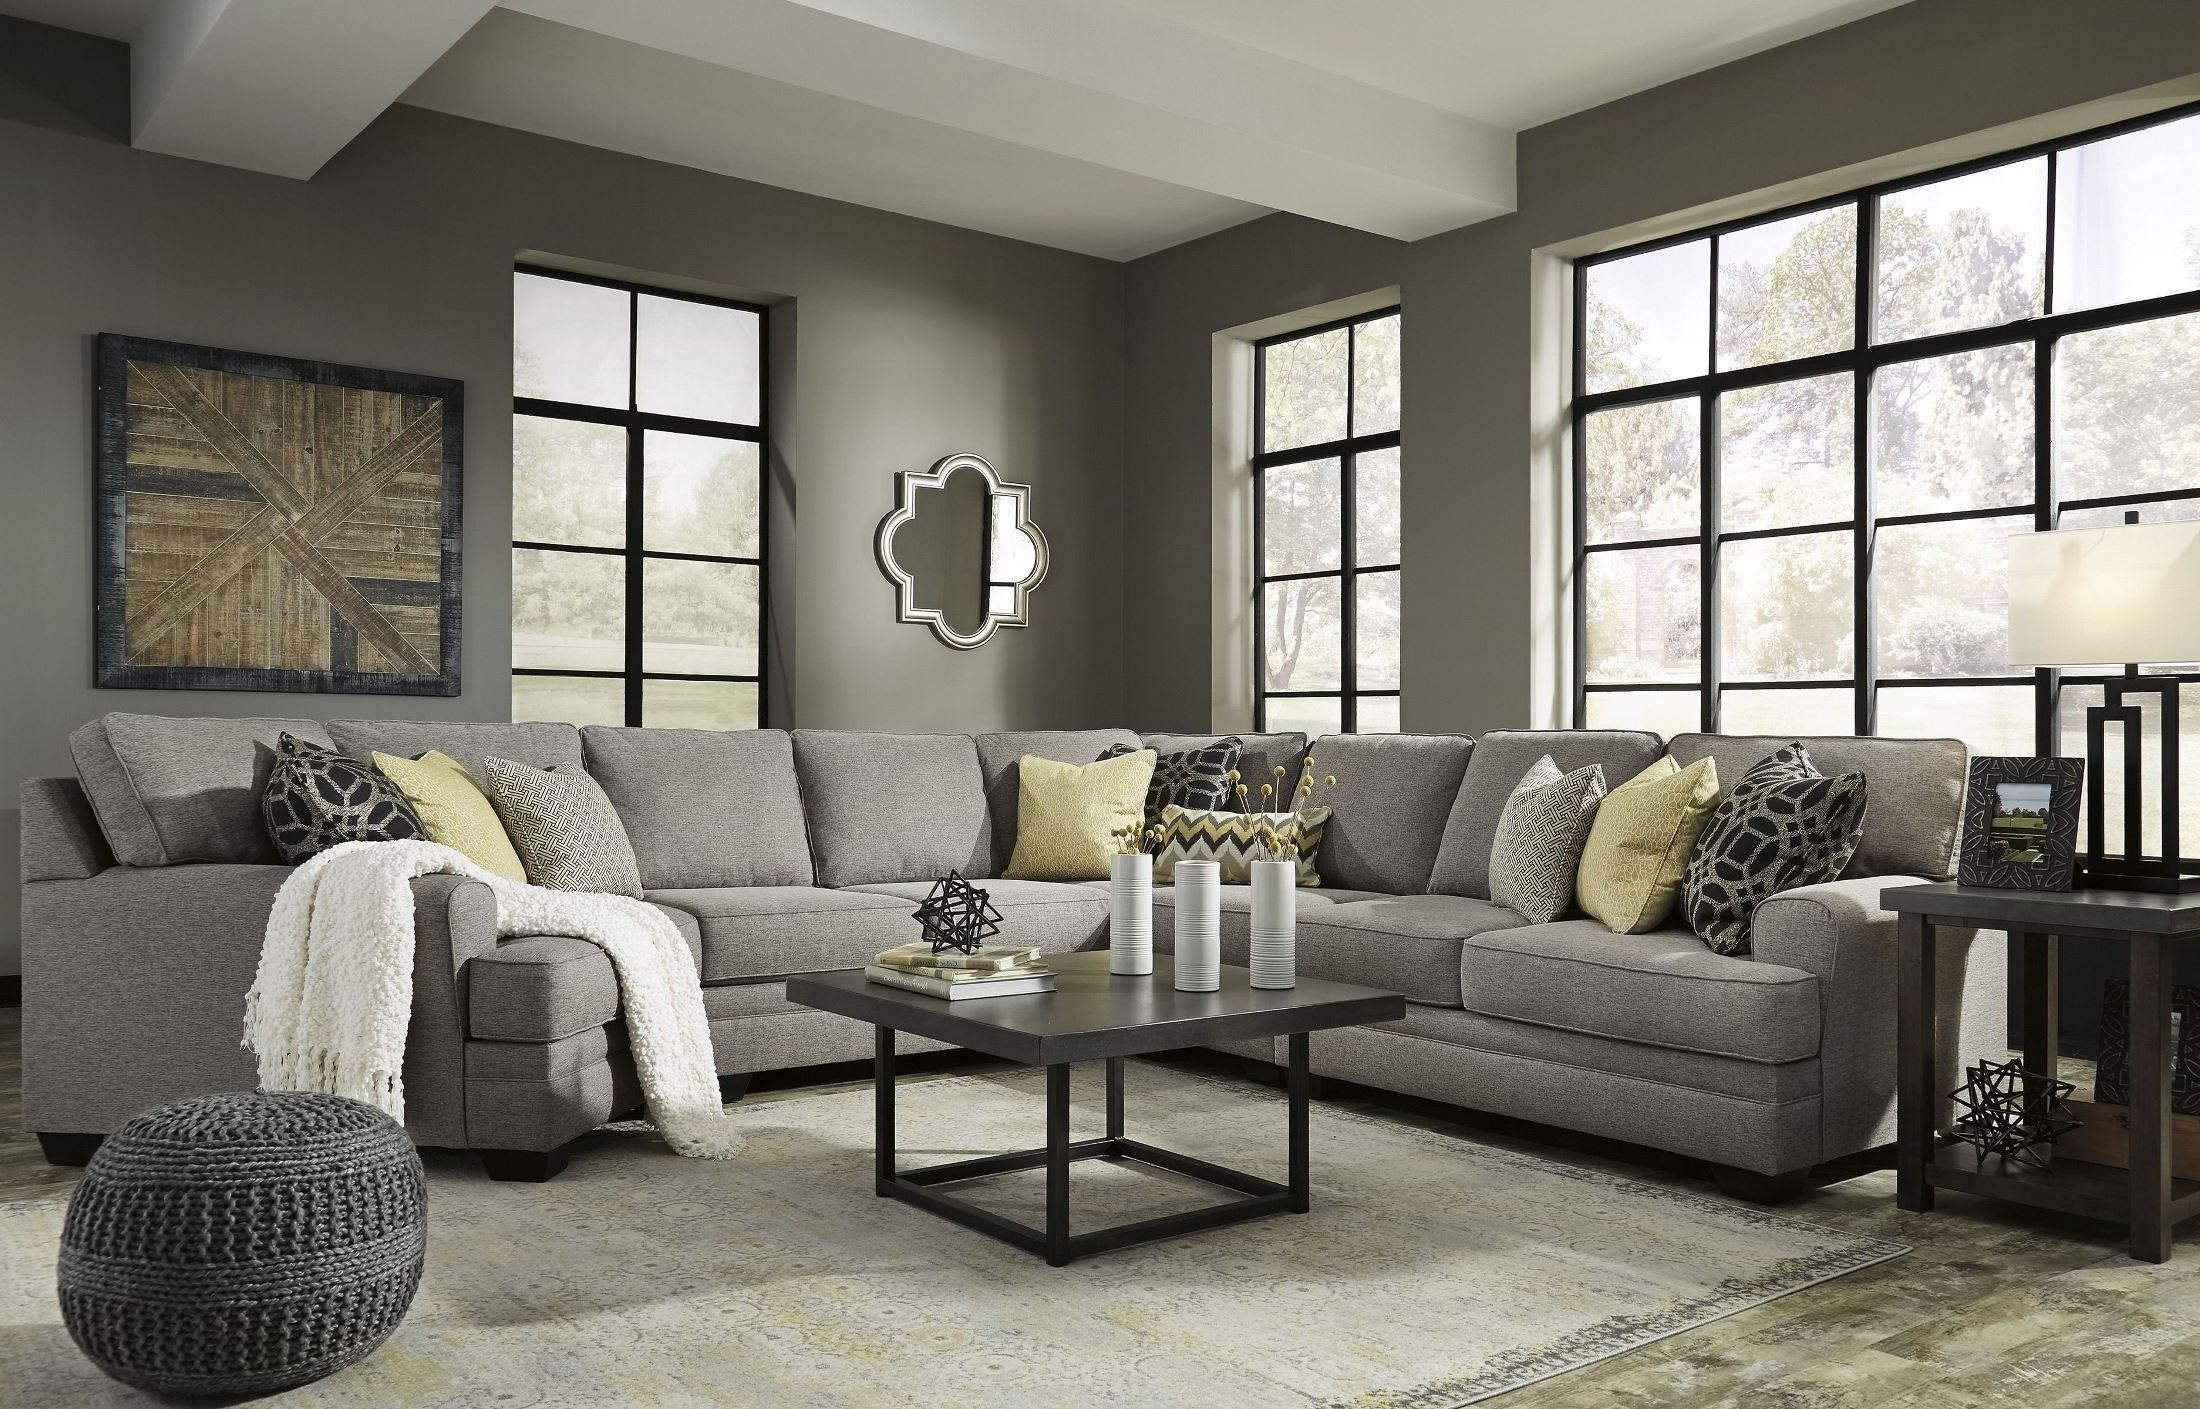 Cresson Pewter Laf Cuddler Sectional From Ashley | Coleman Furniture in Aspen 2 Piece Sleeper Sectionals With Laf Chaise (Image 9 of 30)